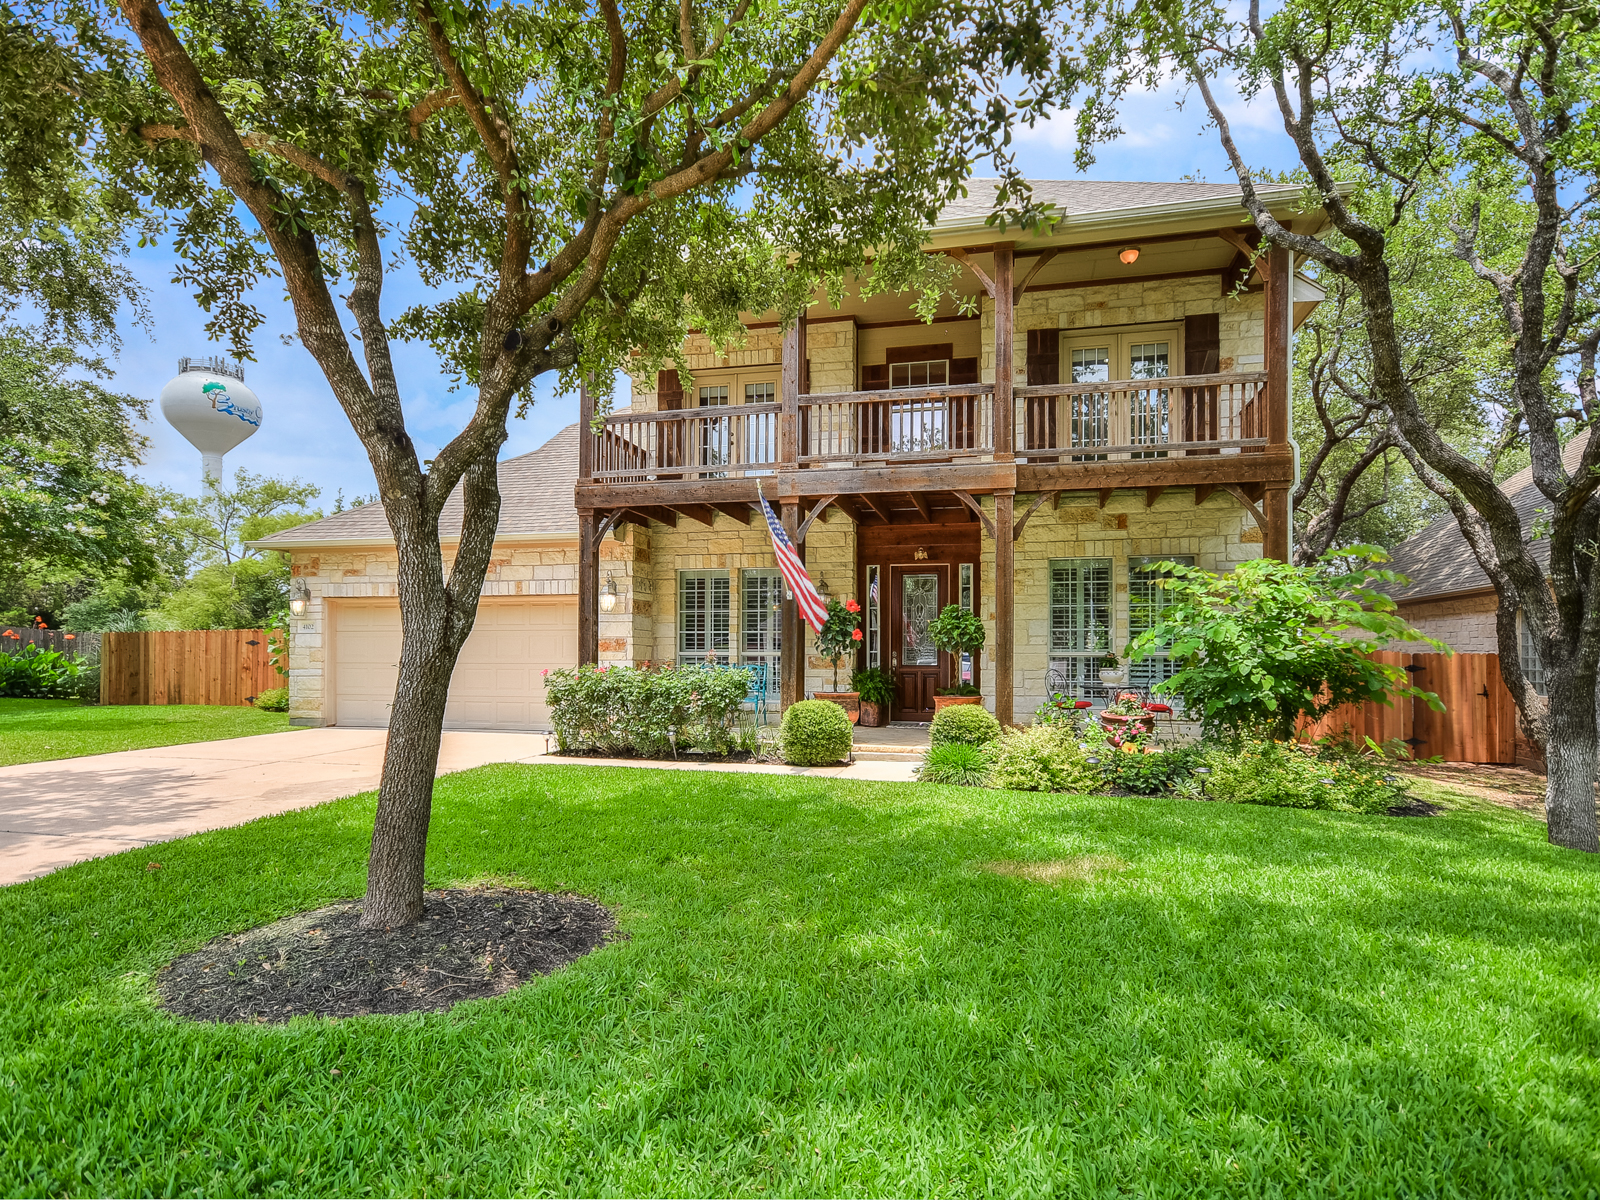 Casa Unifamiliar por un Venta en Gorgeous Streetman Home in Sendero Springs 4102 Risa Ct Round Rock, Texas 78681 Estados Unidos